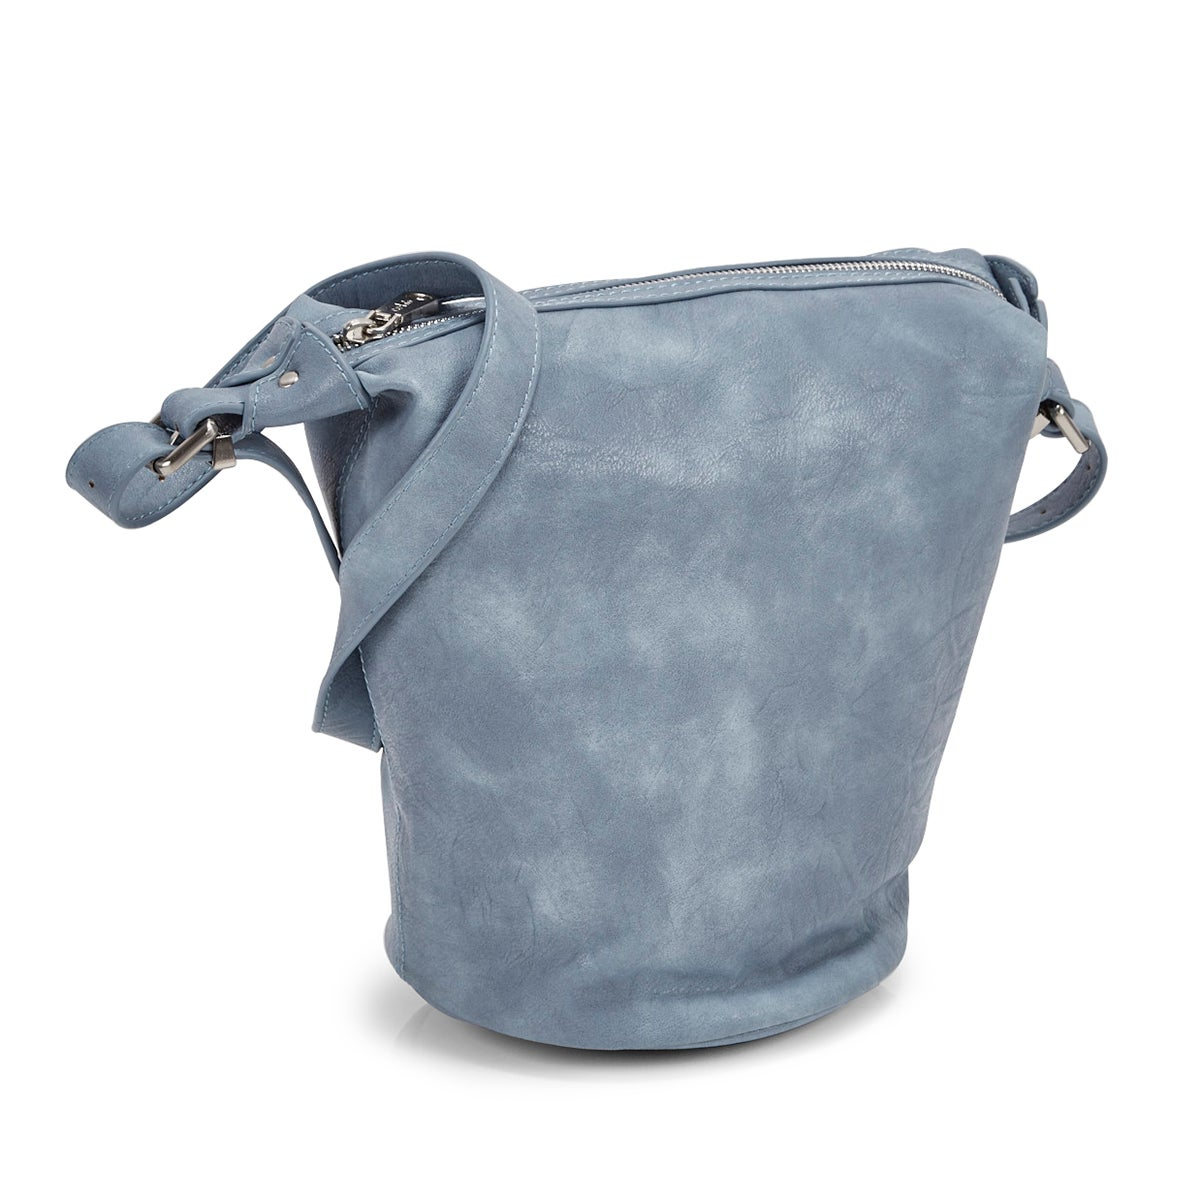 Women's 5580 SUMMER BUCKET blue hobo bag